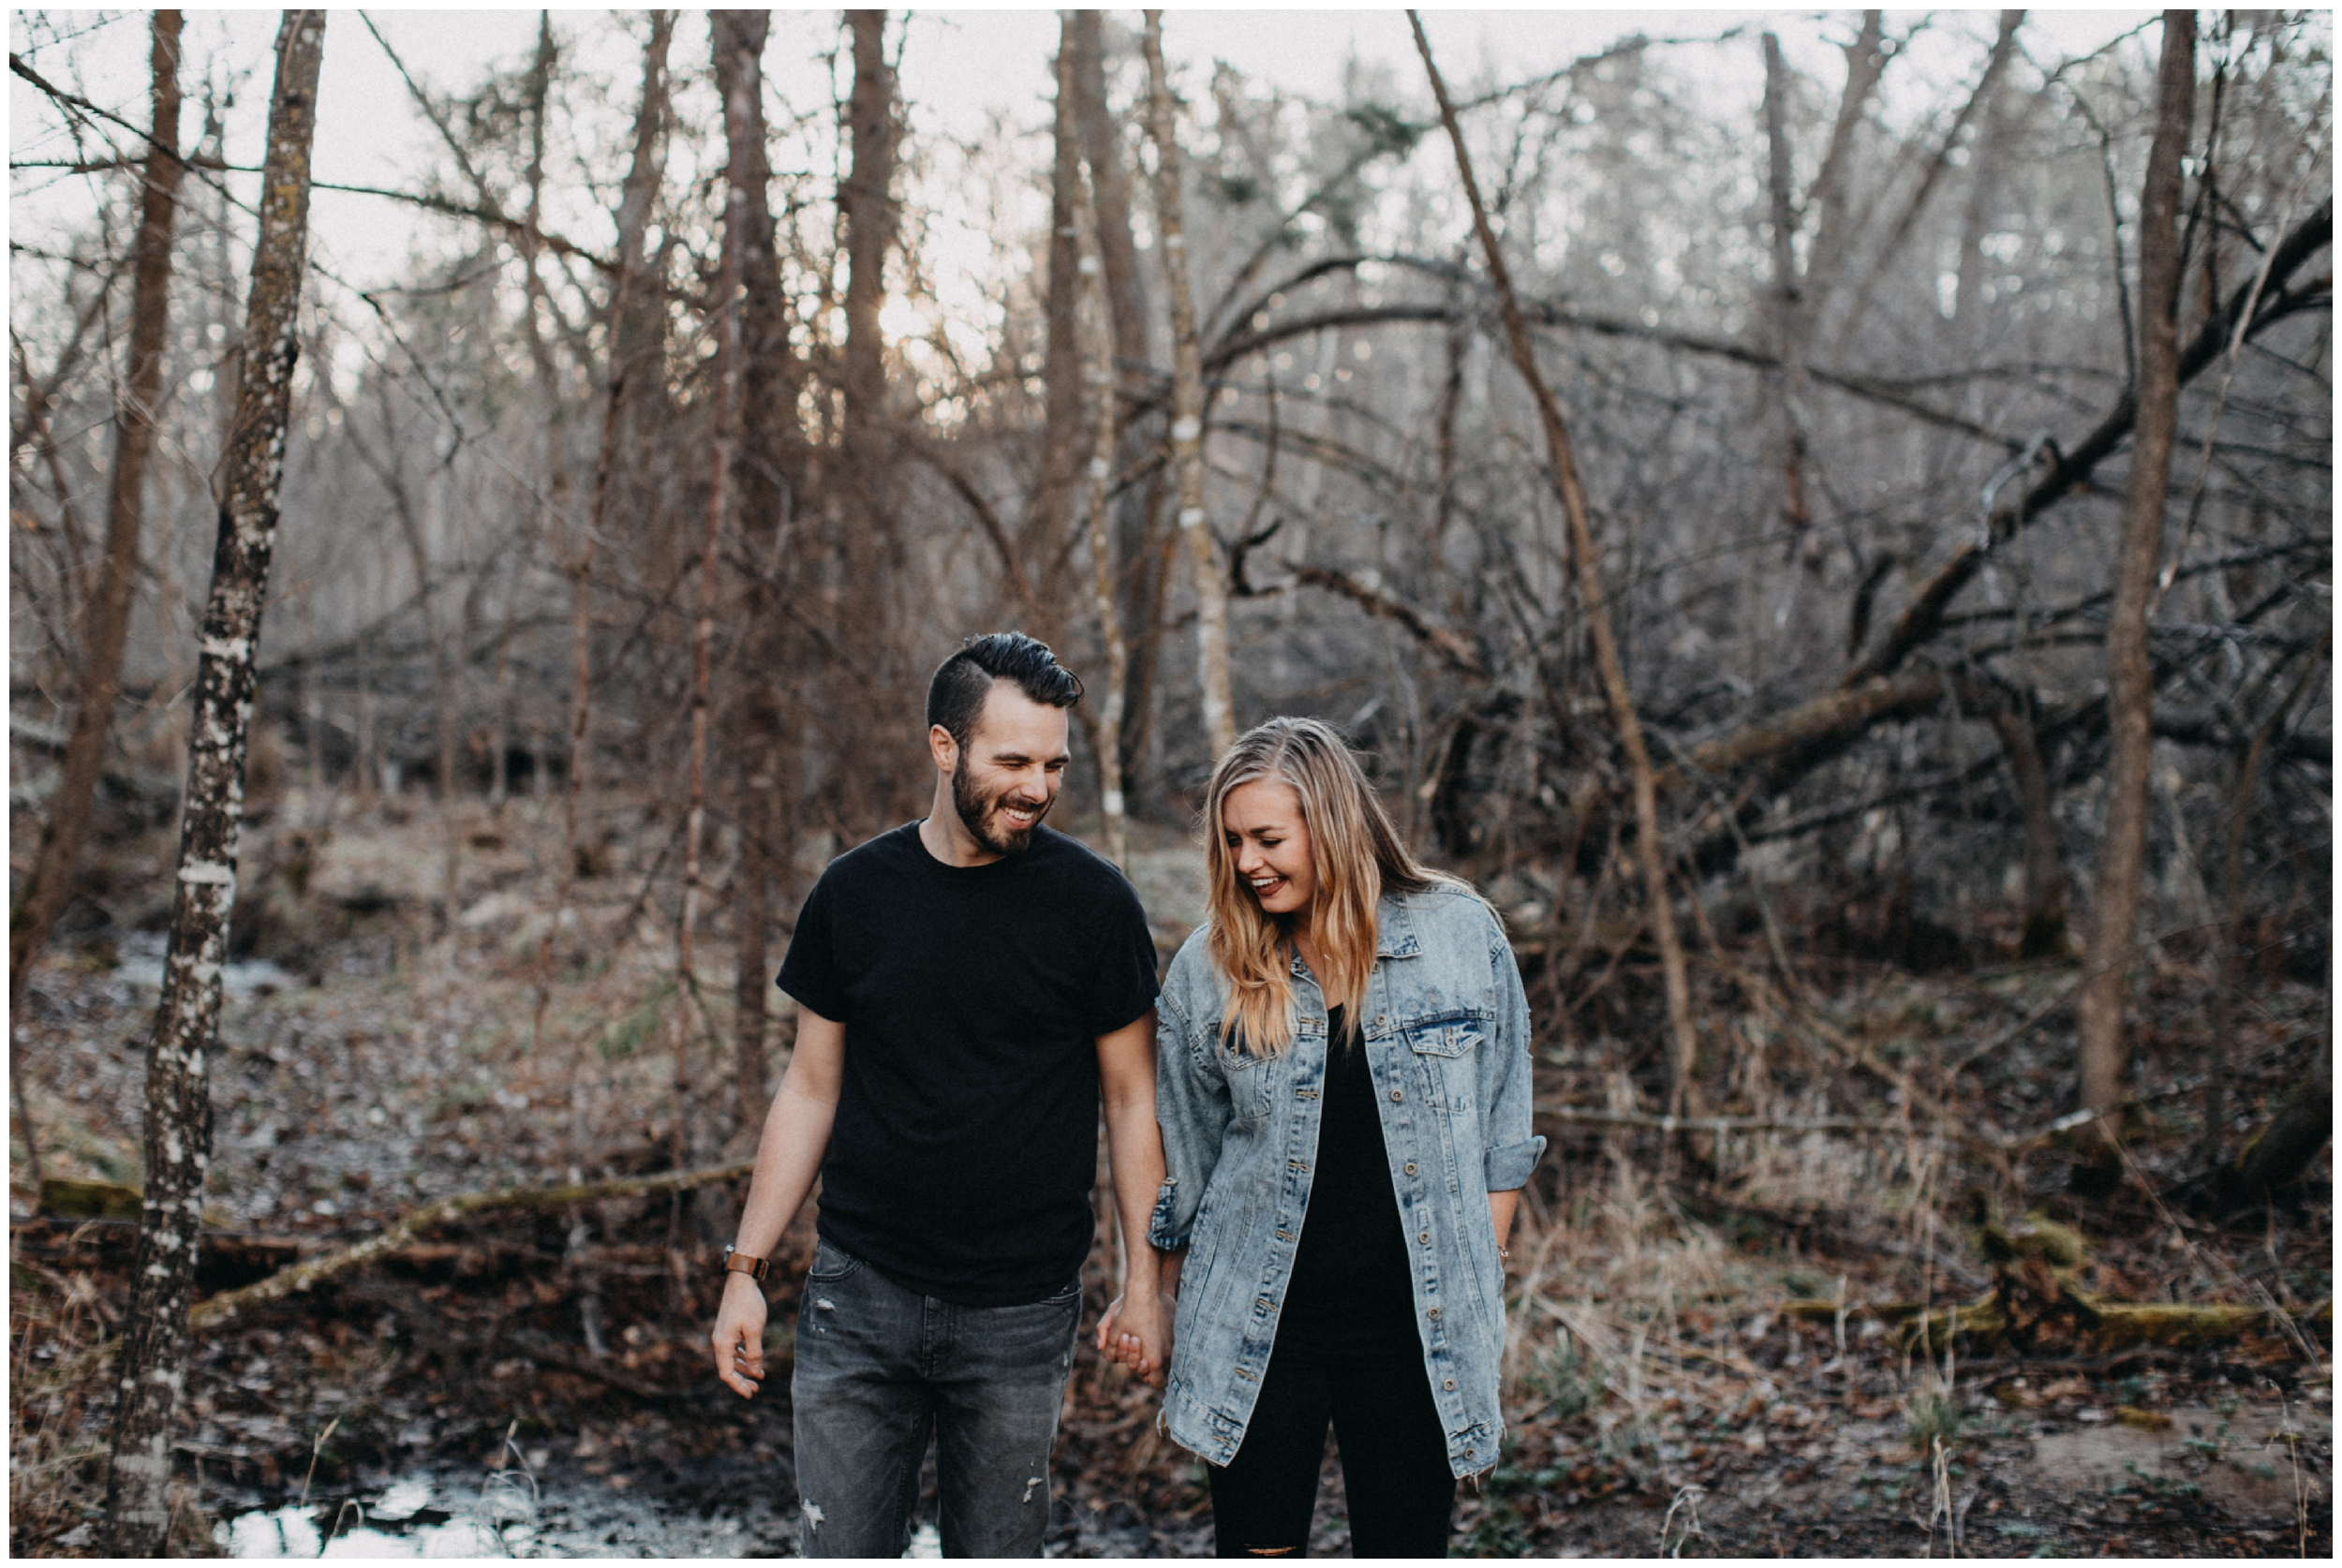 Non-traditional engagement photography at Fritz Loven Park